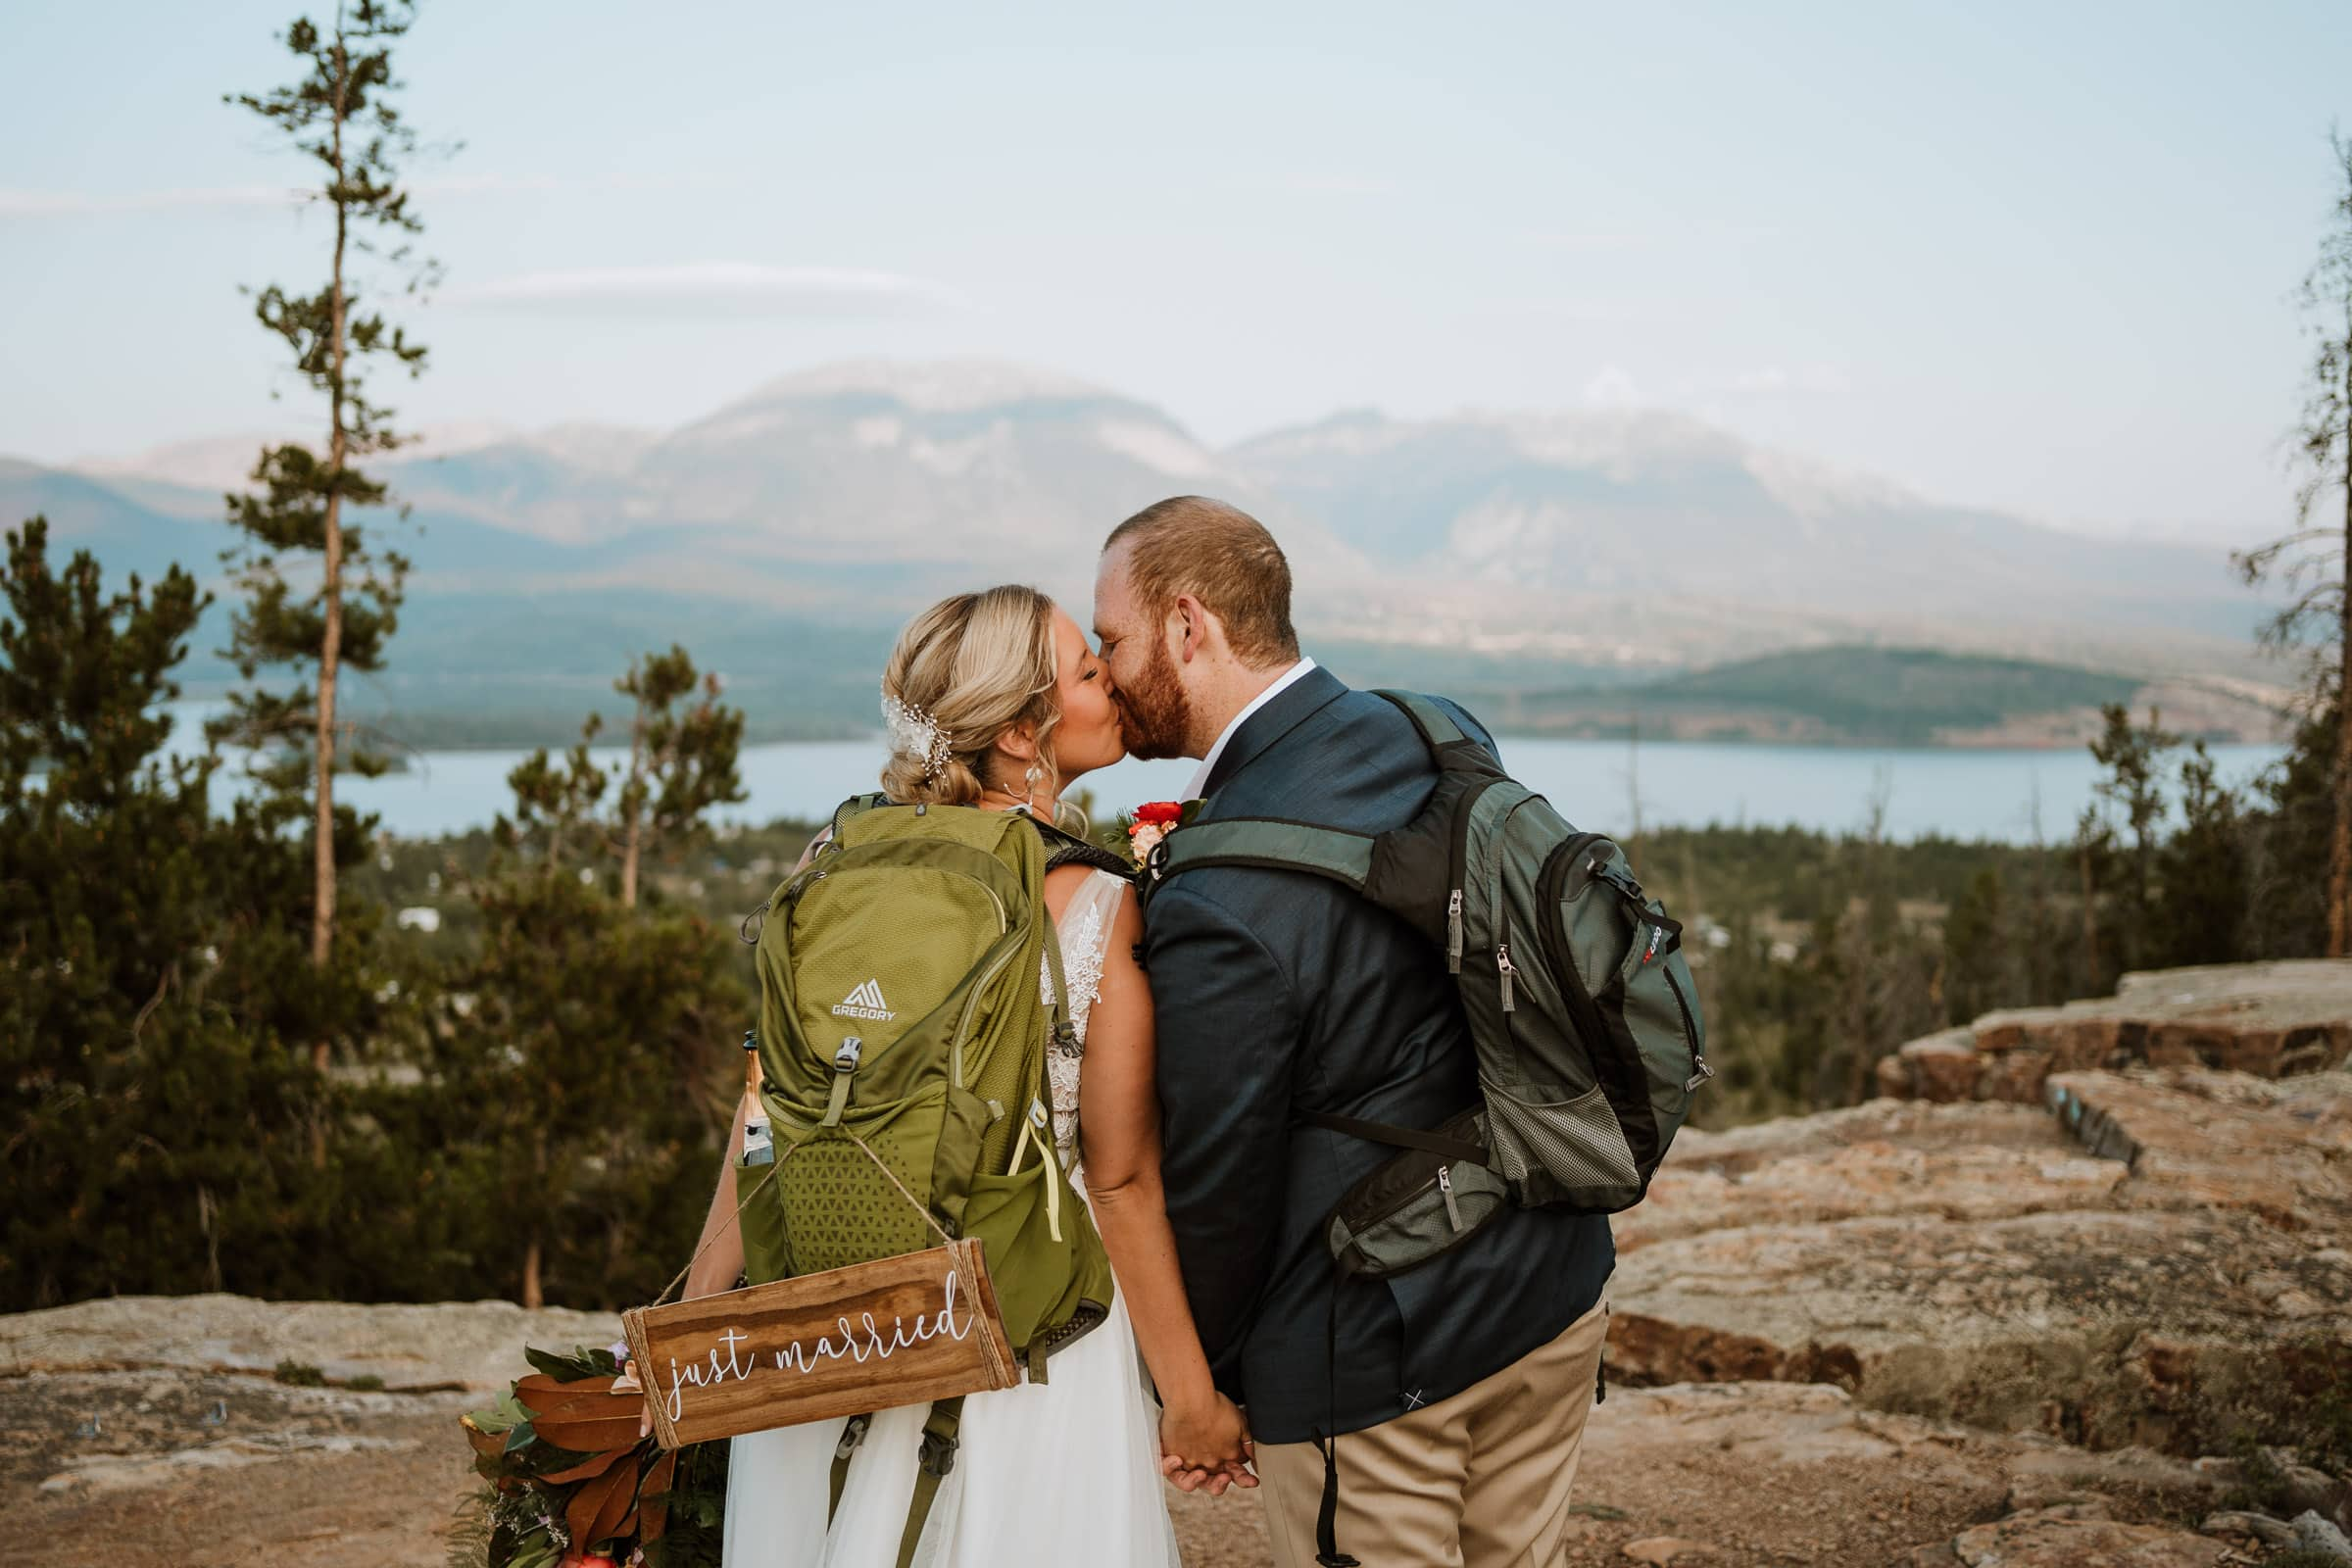 Bride and groom kiss after reading their vows at sunrise on top of a mountain peak near Breckenridge